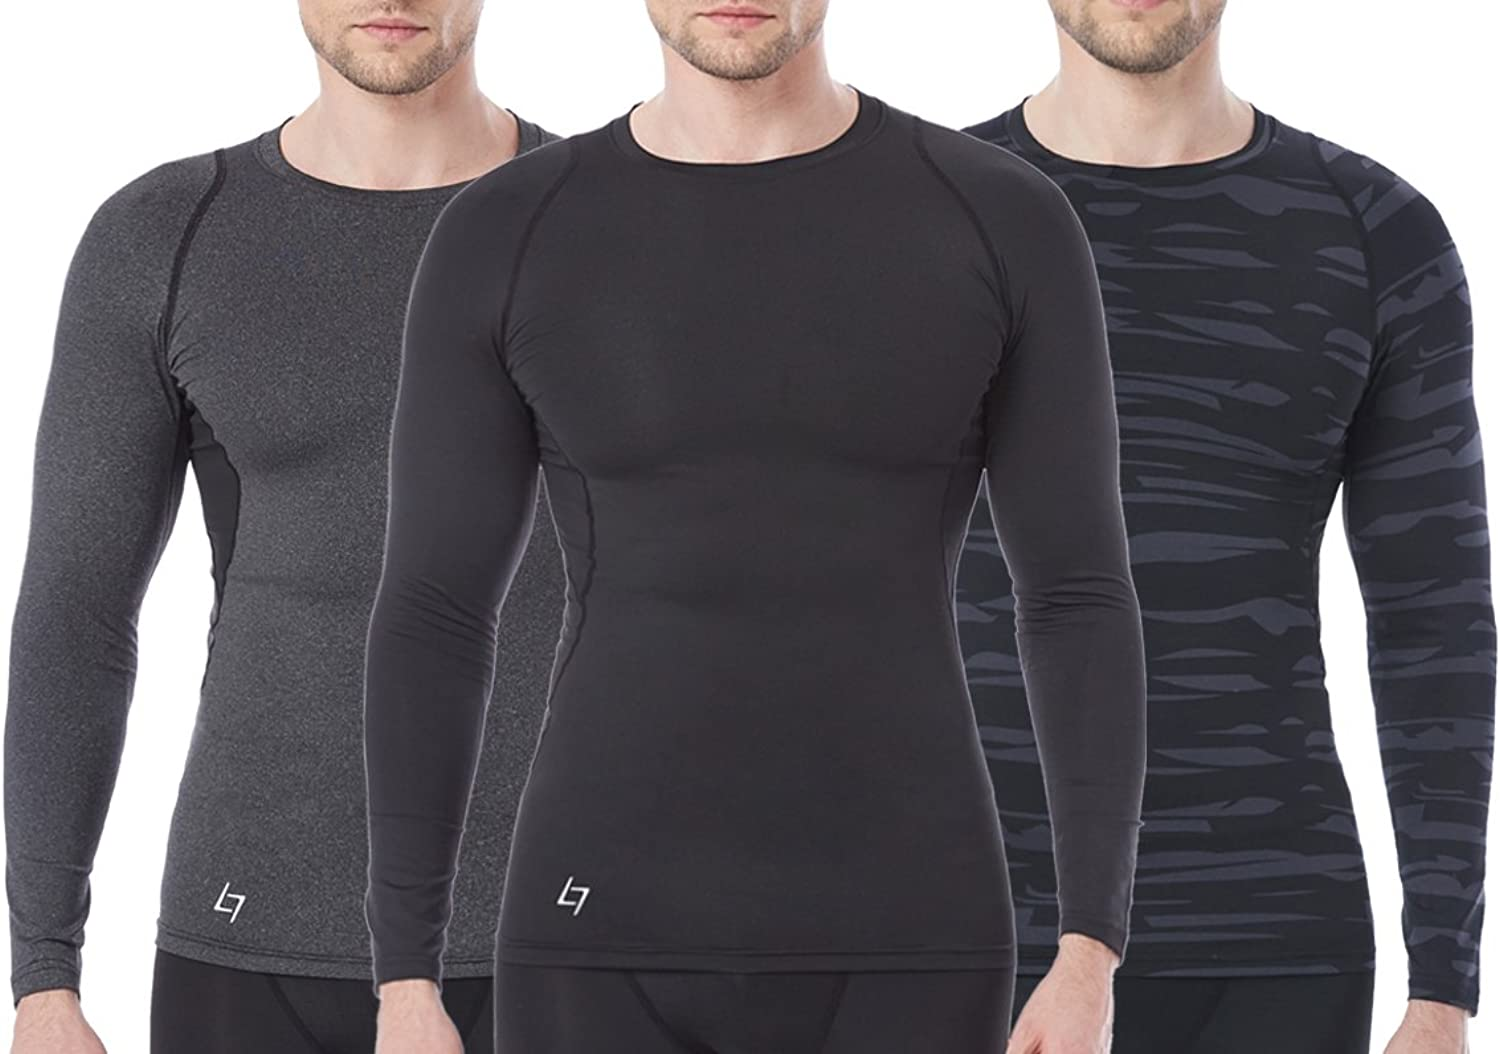 Fittin Men's Athletic Long Sleeve Compression T Shirts - for Sport Running Basketball Football